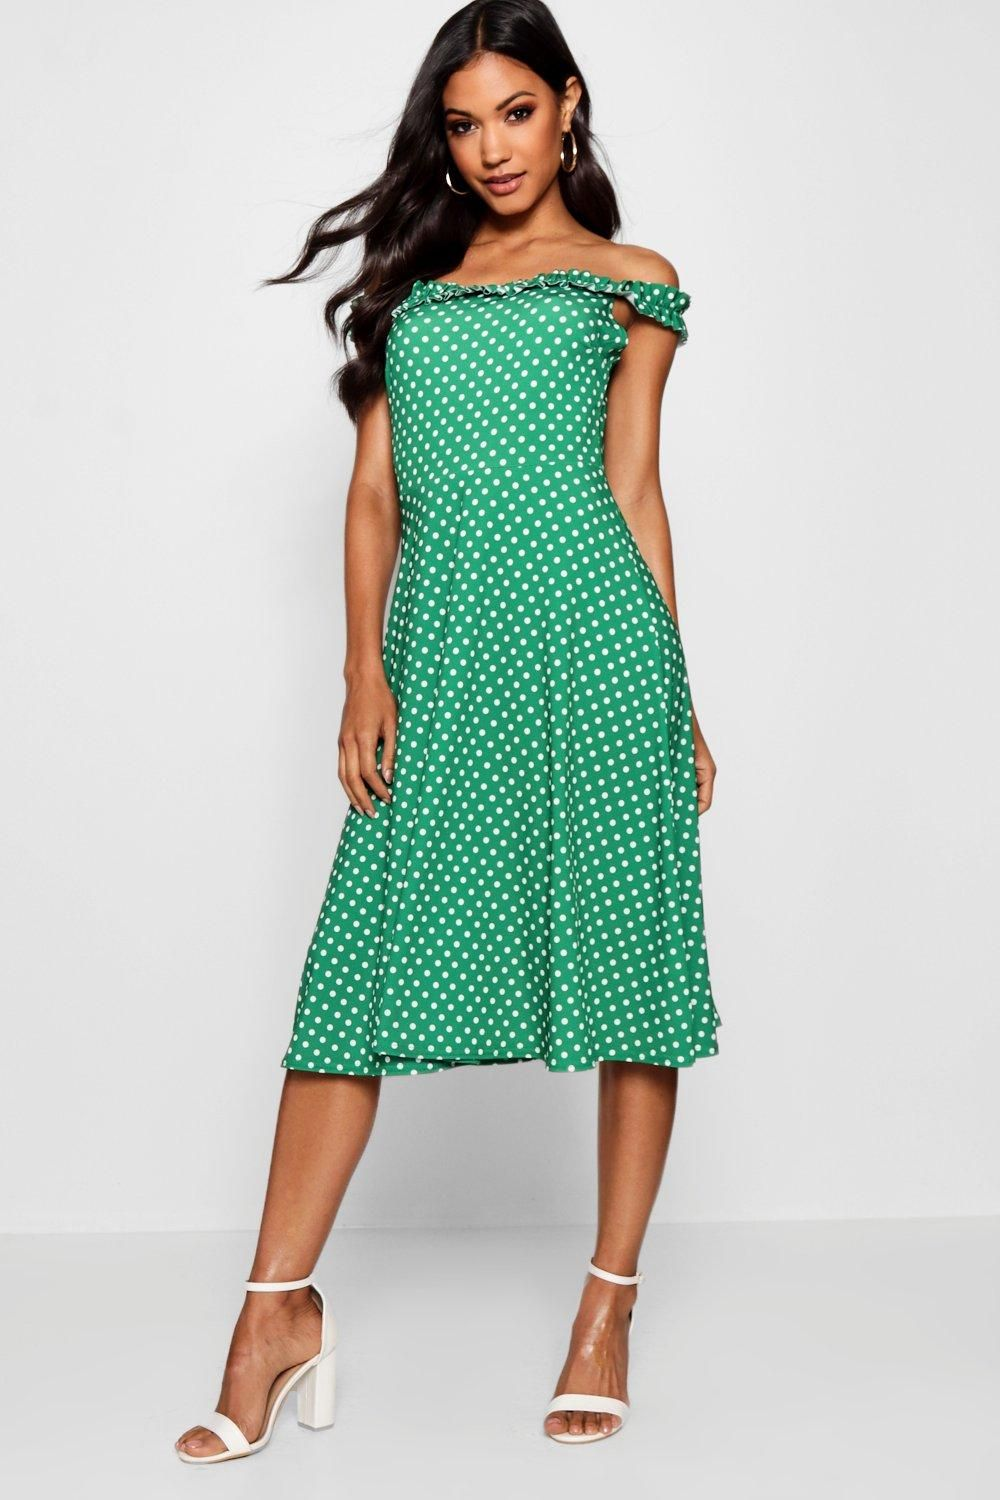 Click here to find out about the Frill Neck Edge Polka Dot Midi Skater Dress  from Boohoo b335026ce